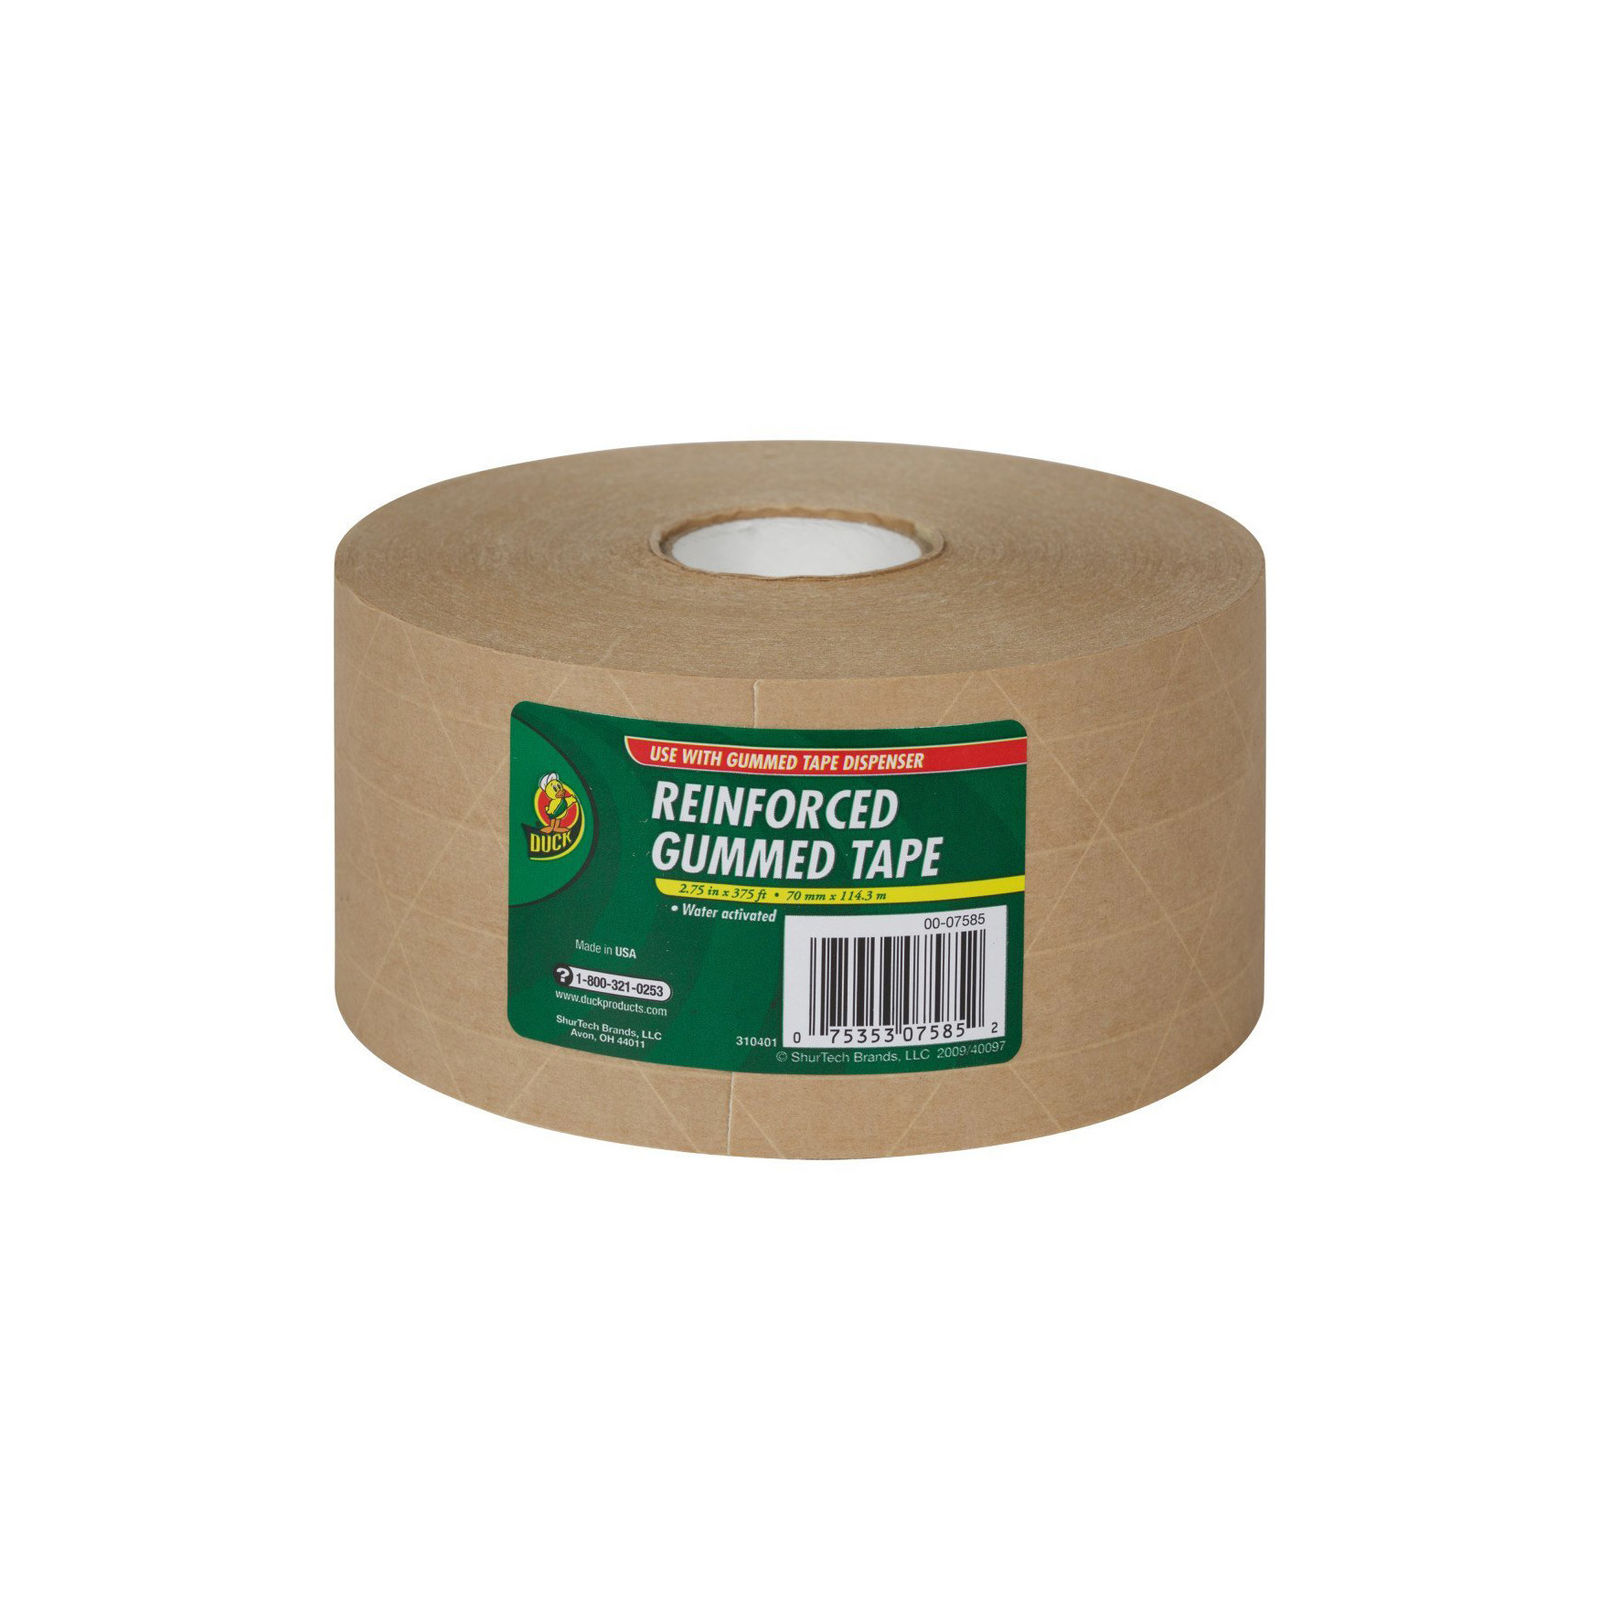 "Duck Fiberglass Reinforced Gummed Kraft Paper Tape, Water Activated, 2.75"" x 375'"